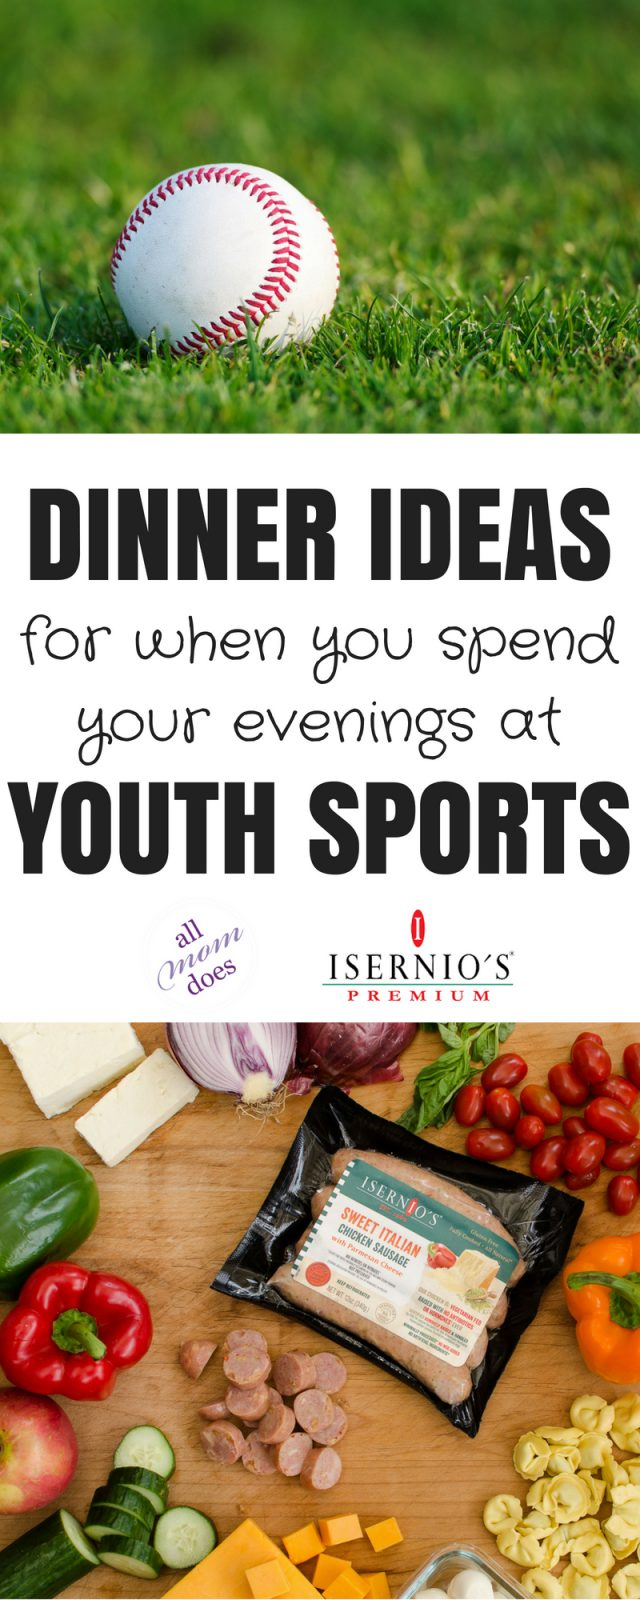 Dinner ideas for youth sports. #picnic #baseball #littleleague